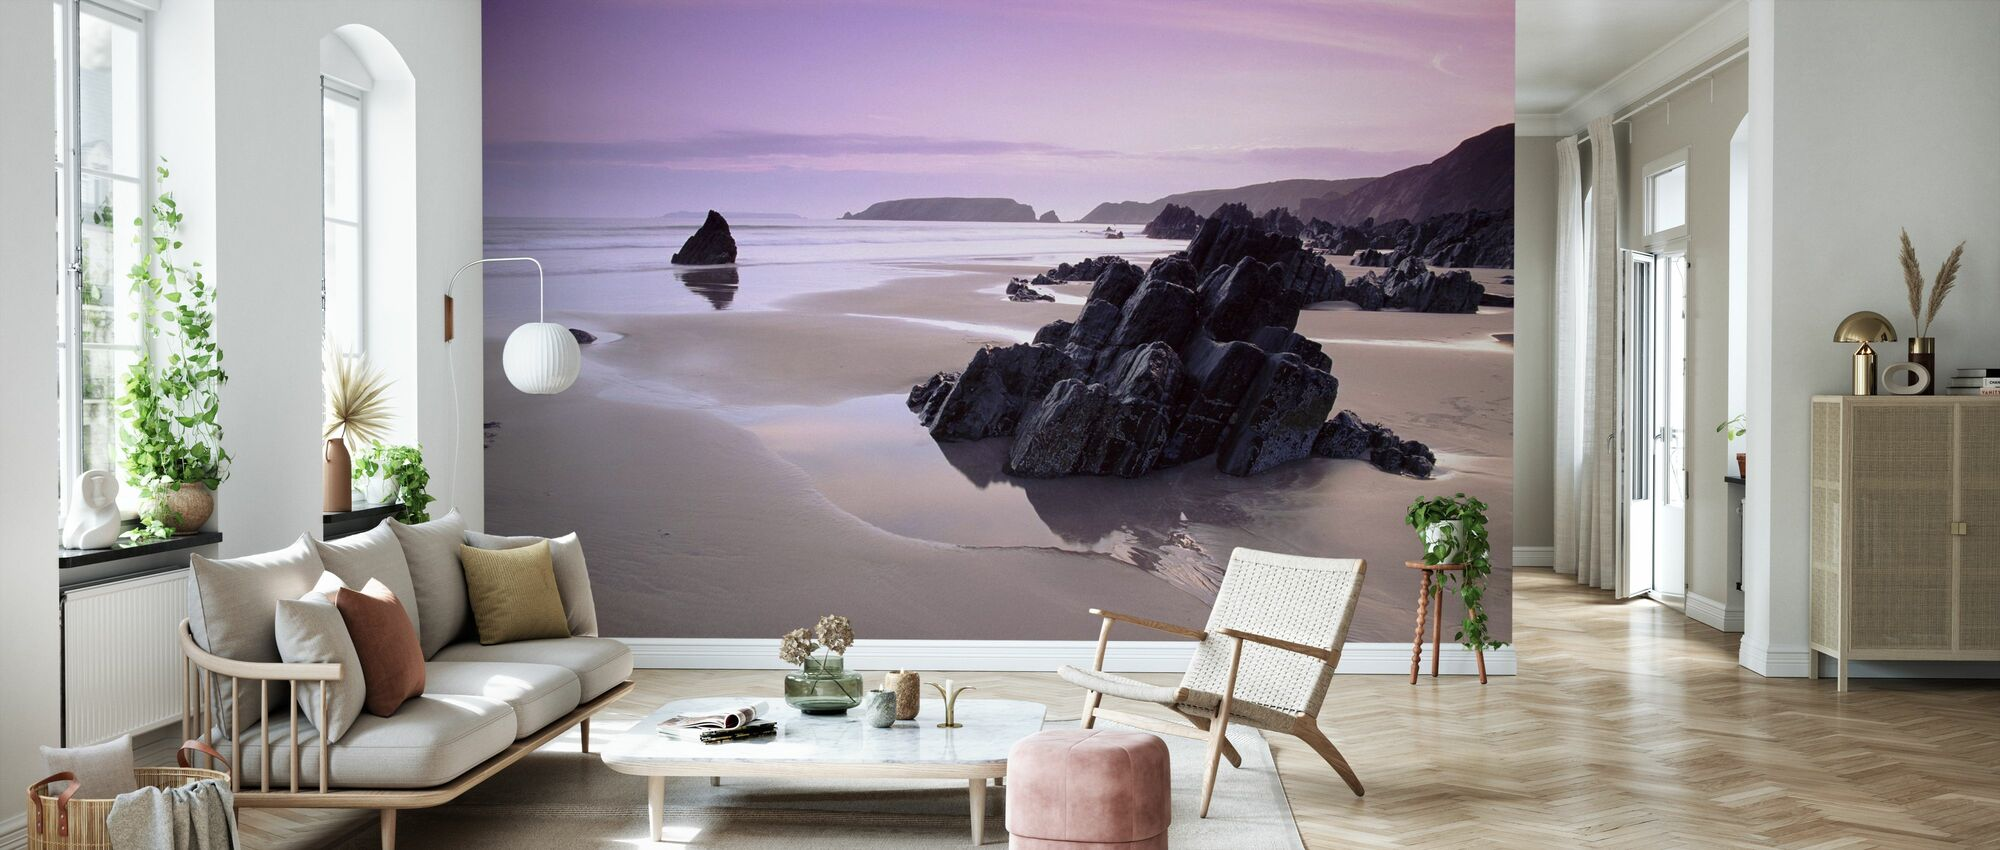 Pembrokeshire - Wallpaper - Living Room